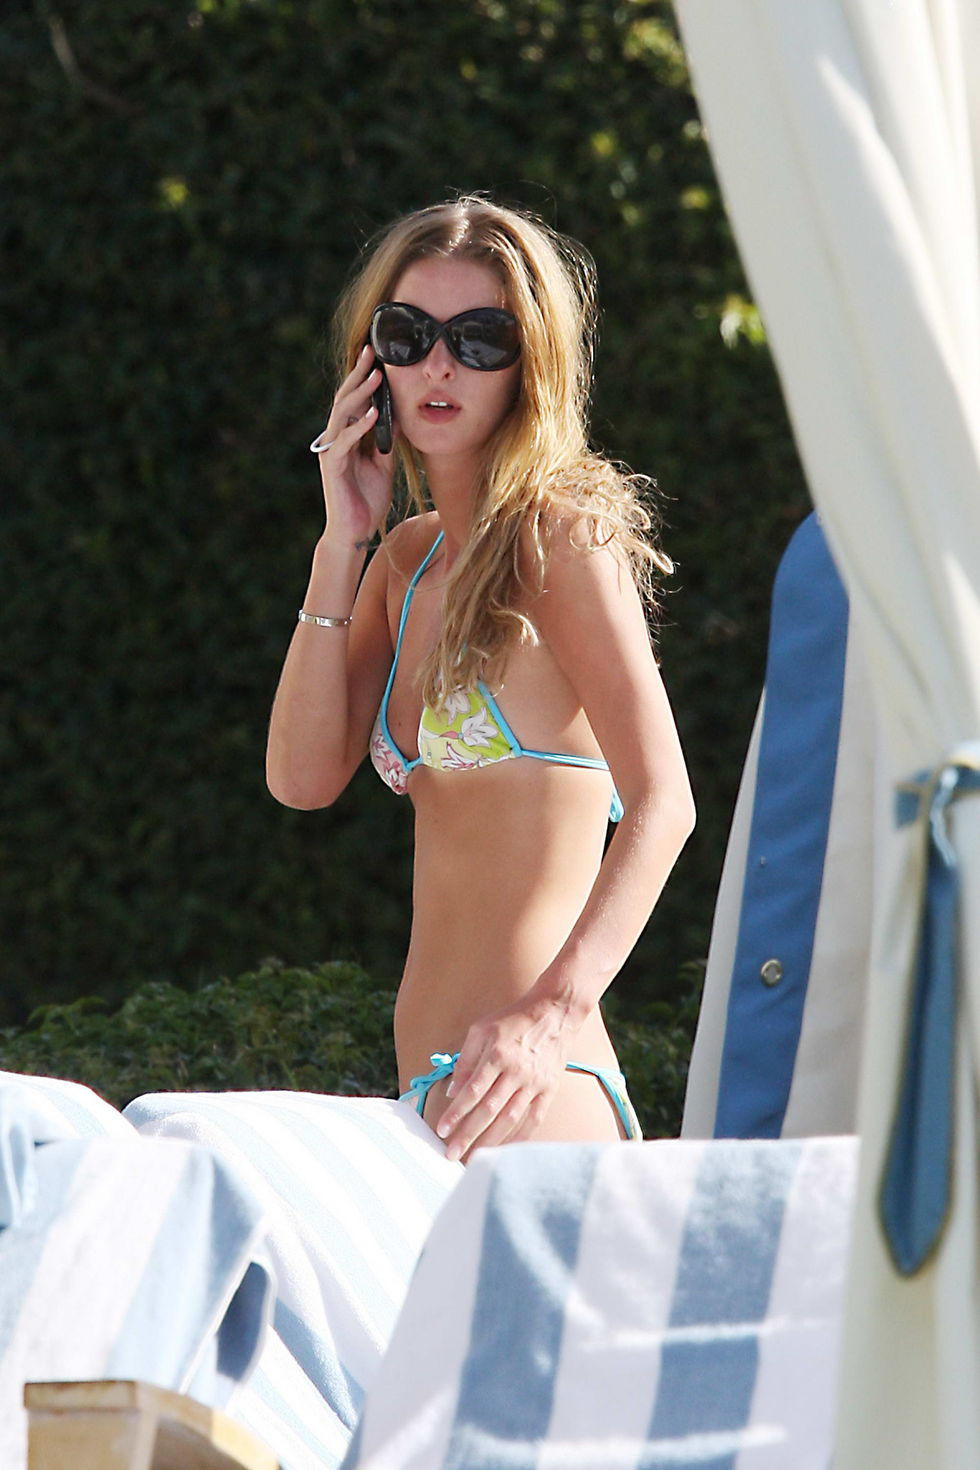 nicky-hilton-bikini-candids-at-the-pool-in-hawaii-01